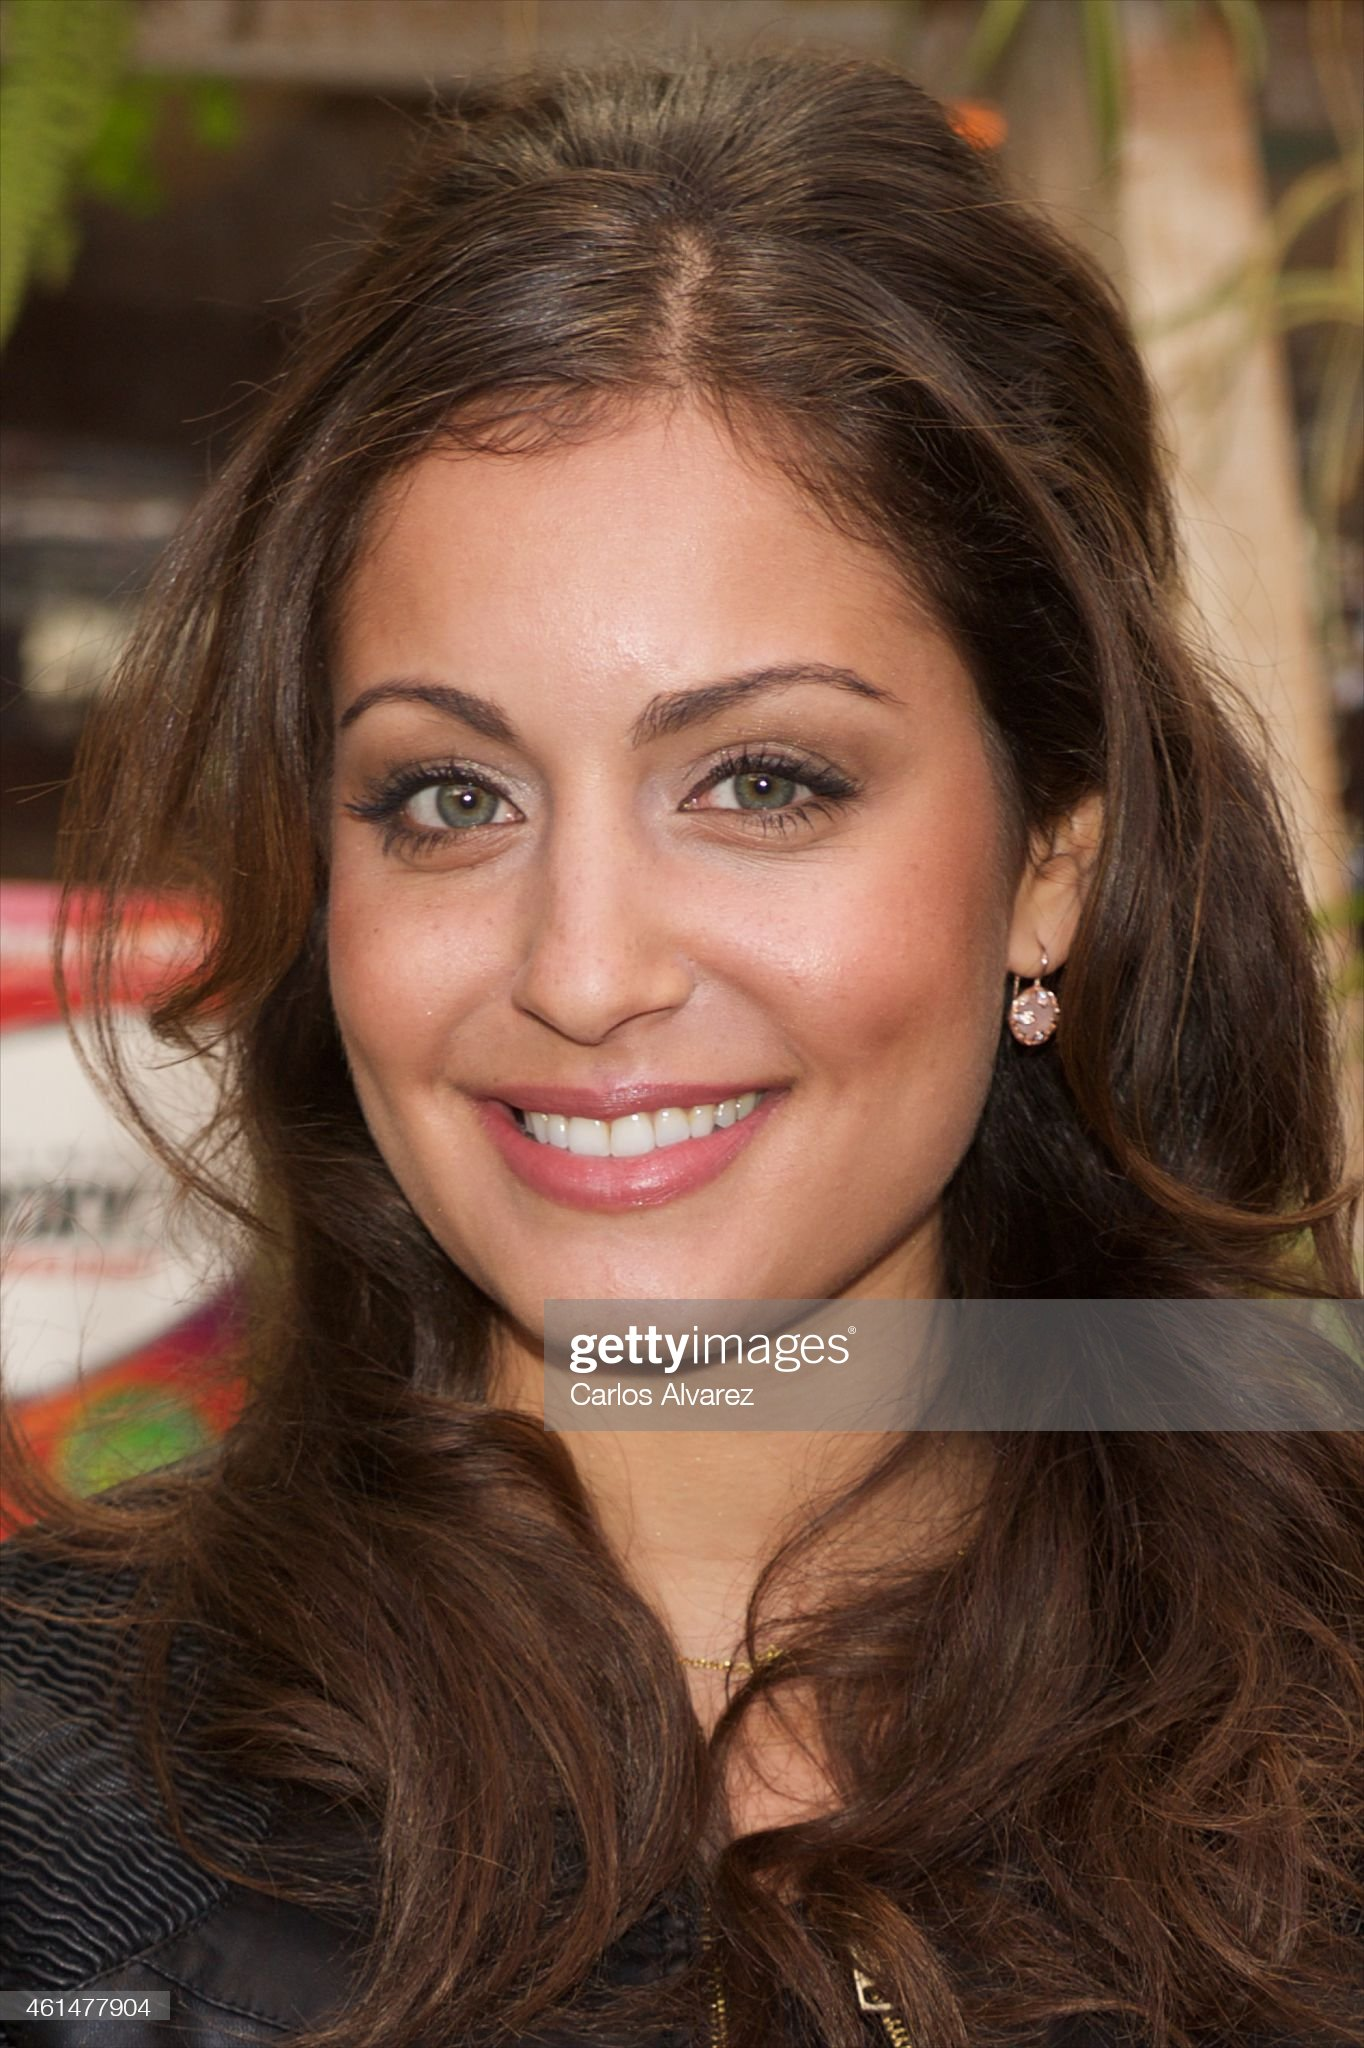 Ojos azules - personas famosas con los ojos de color AZUL Spanish-actress-hiba-abouk-presents-the-new-hydroxycut-at-the-san-picture-id461477904?s=2048x2048